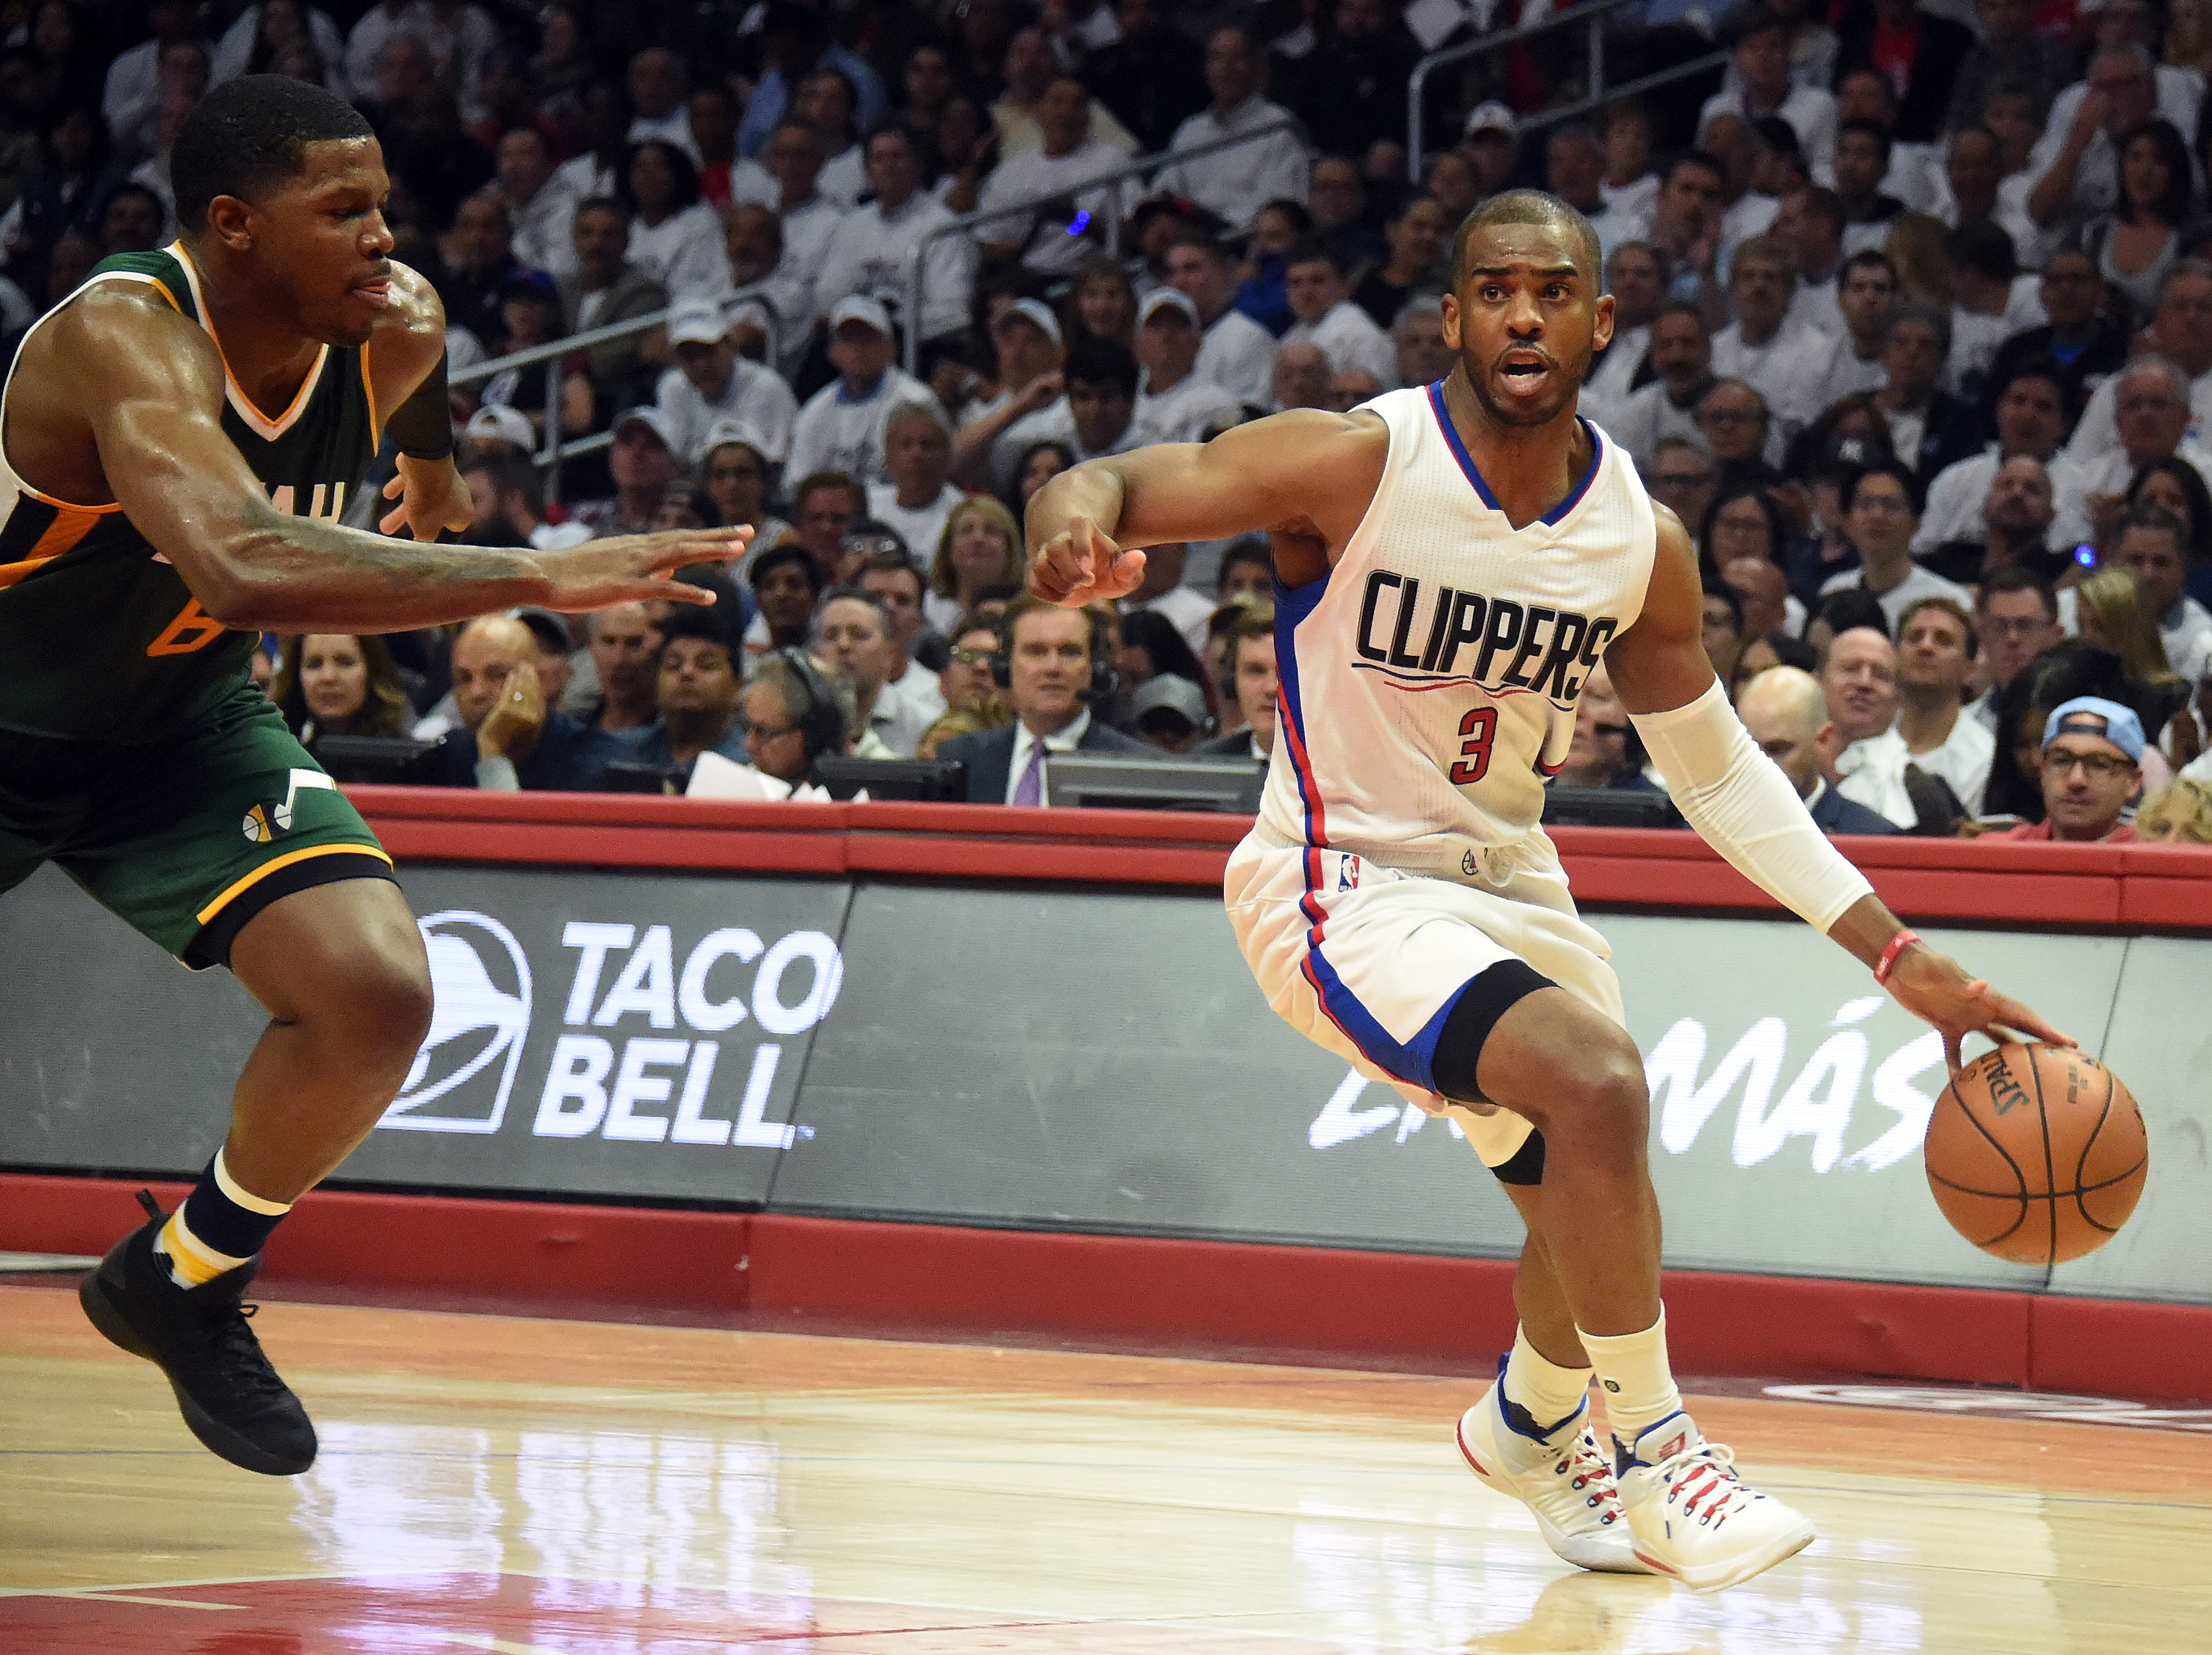 10031457-nba-playoffs-utah-jazz-at-los-angeles-clippers-1